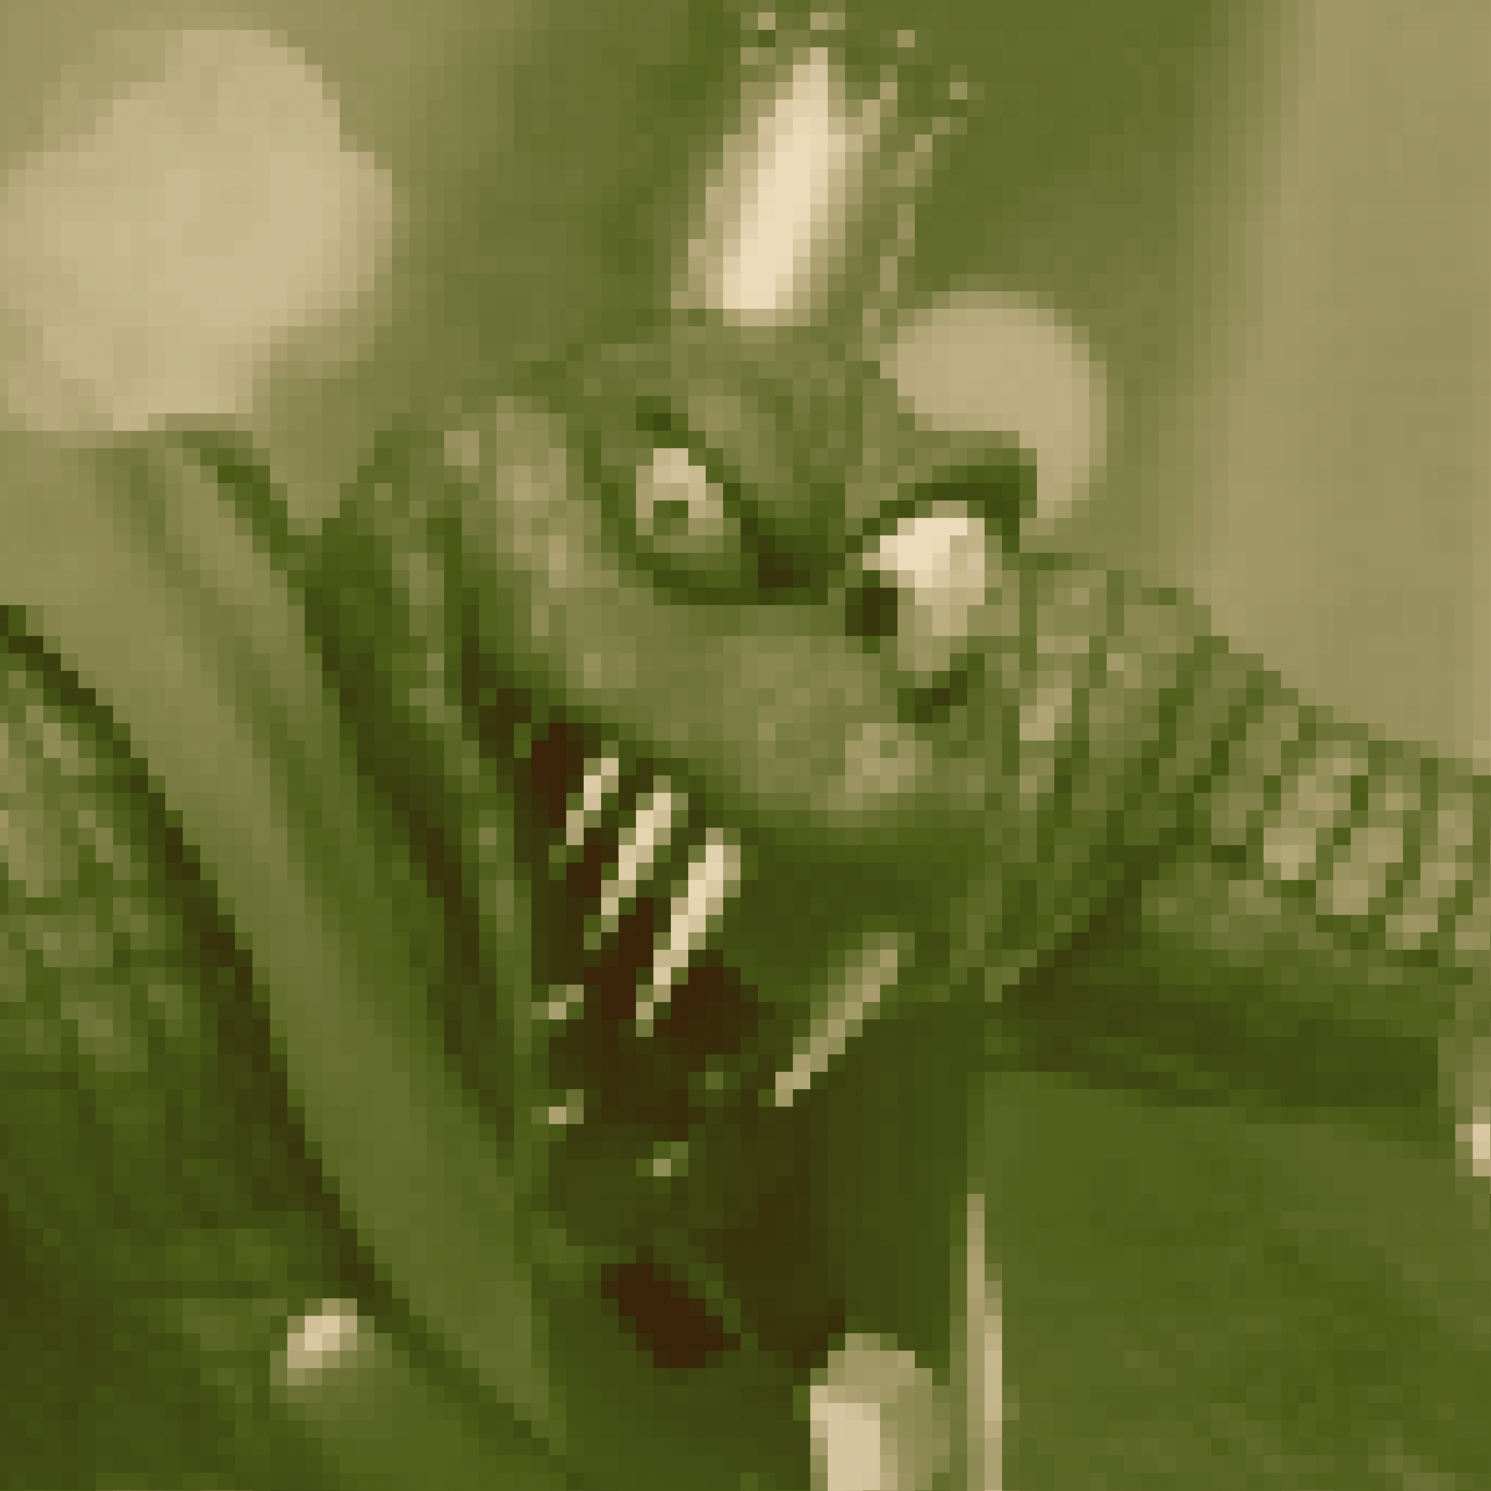 krool-game-boy.png